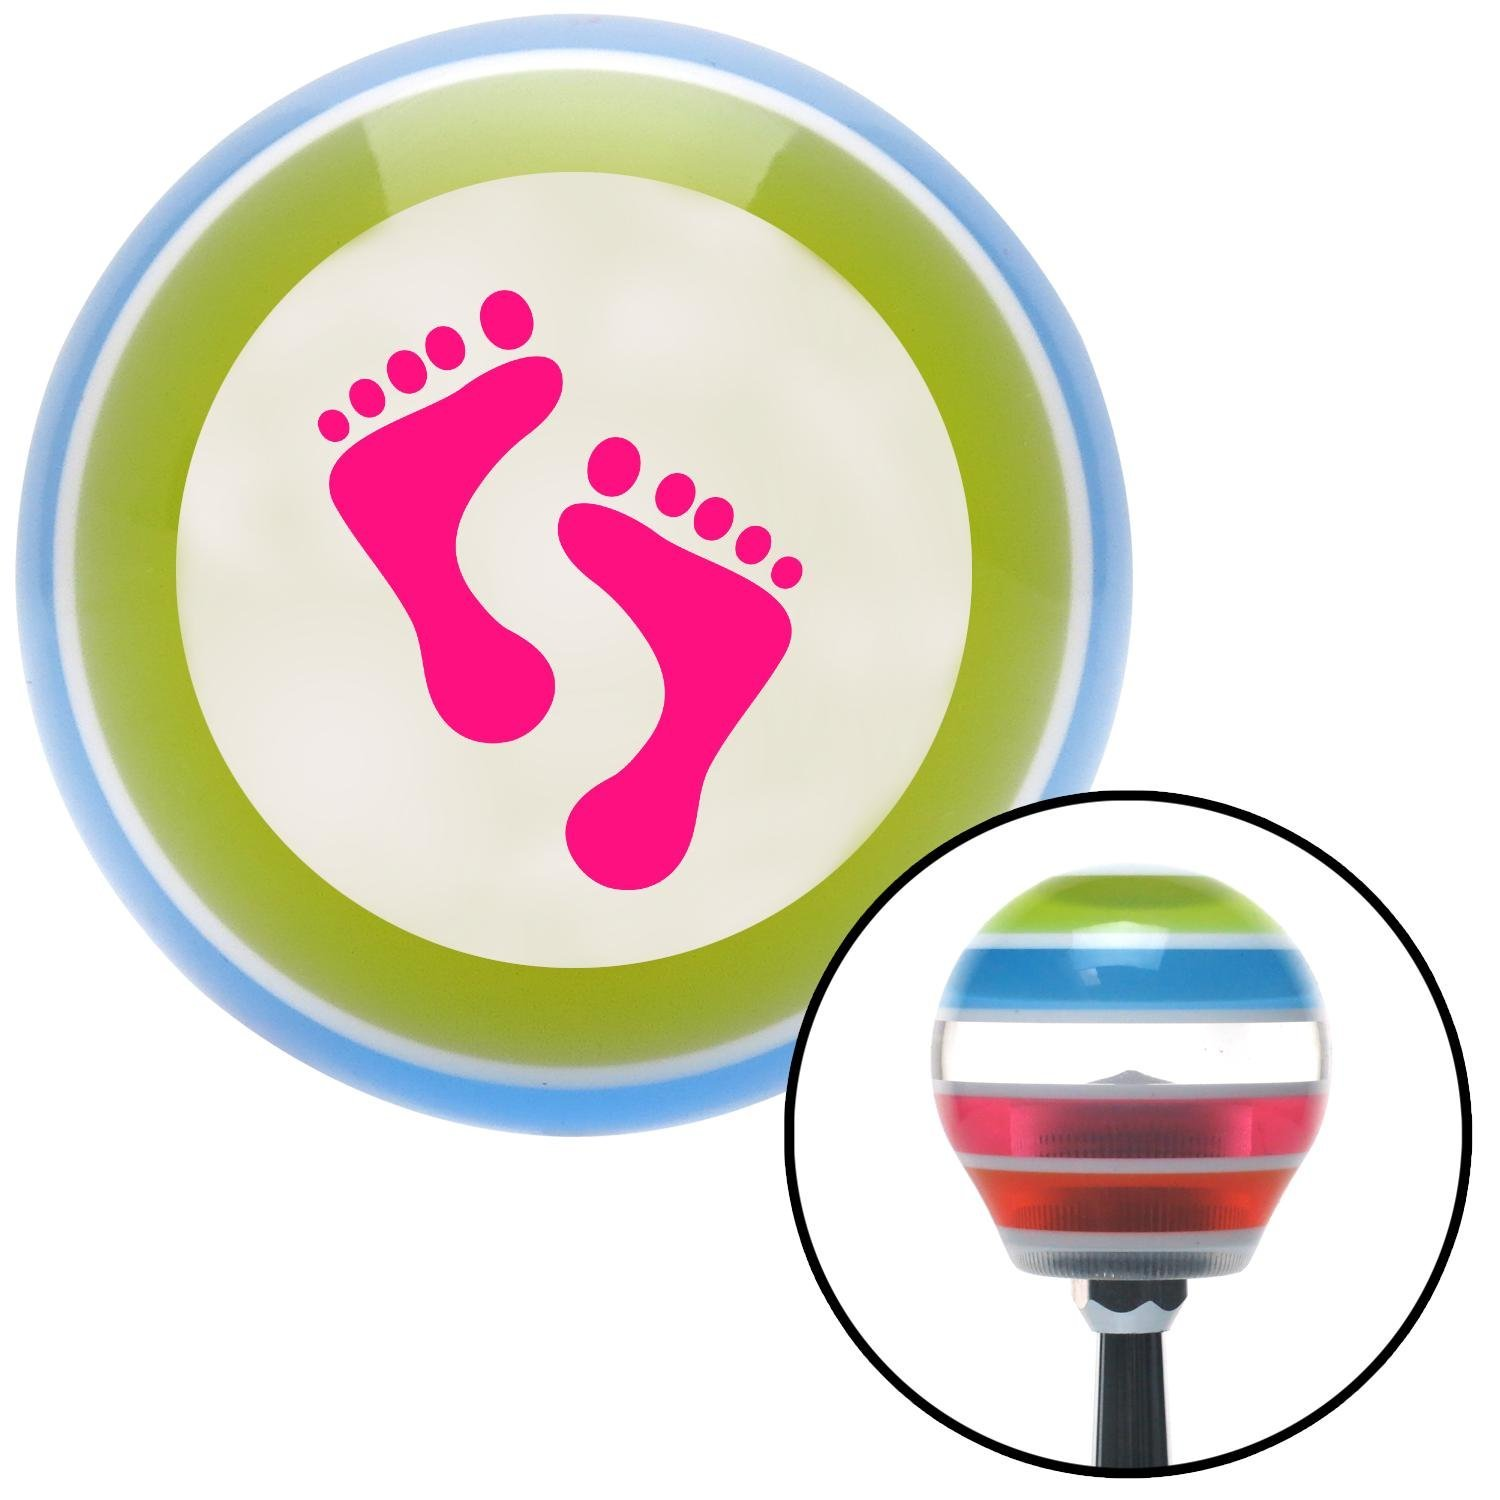 Pink Foot Prints American Shifter 132229 Stripe Shift Knob with M16 x 1.5 Insert